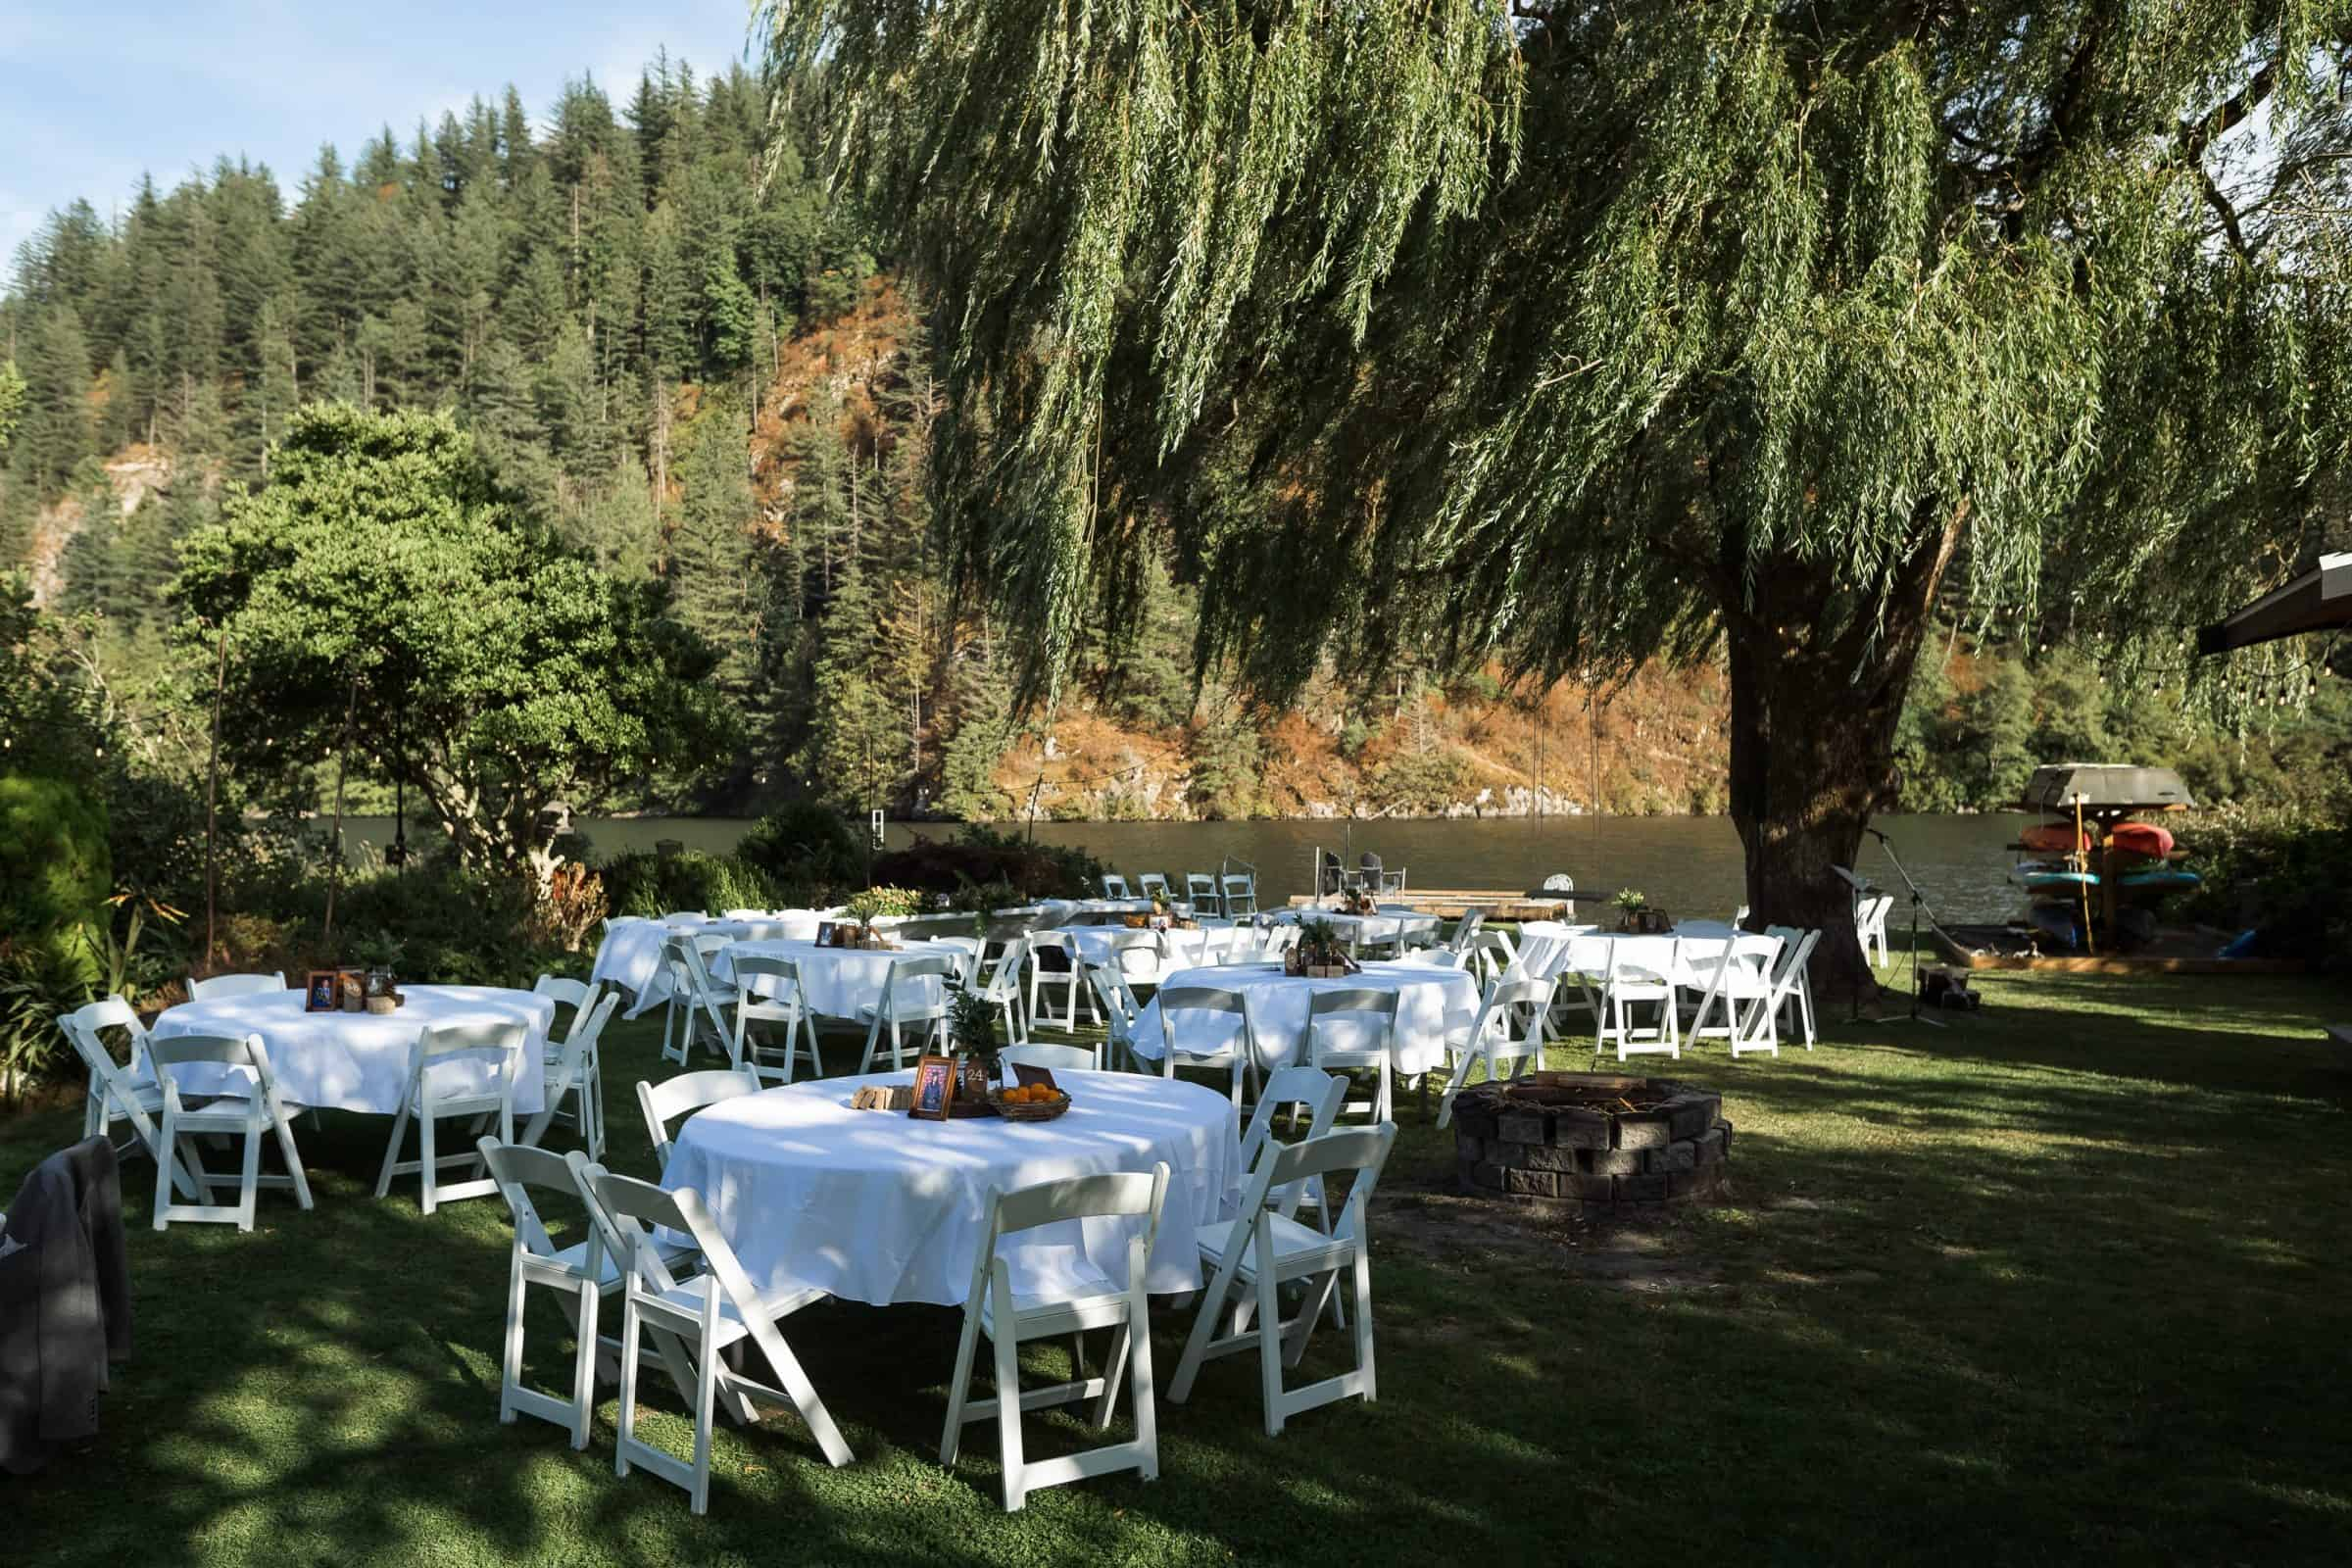 pull back of tables set up for wedding reception in backyard by lake